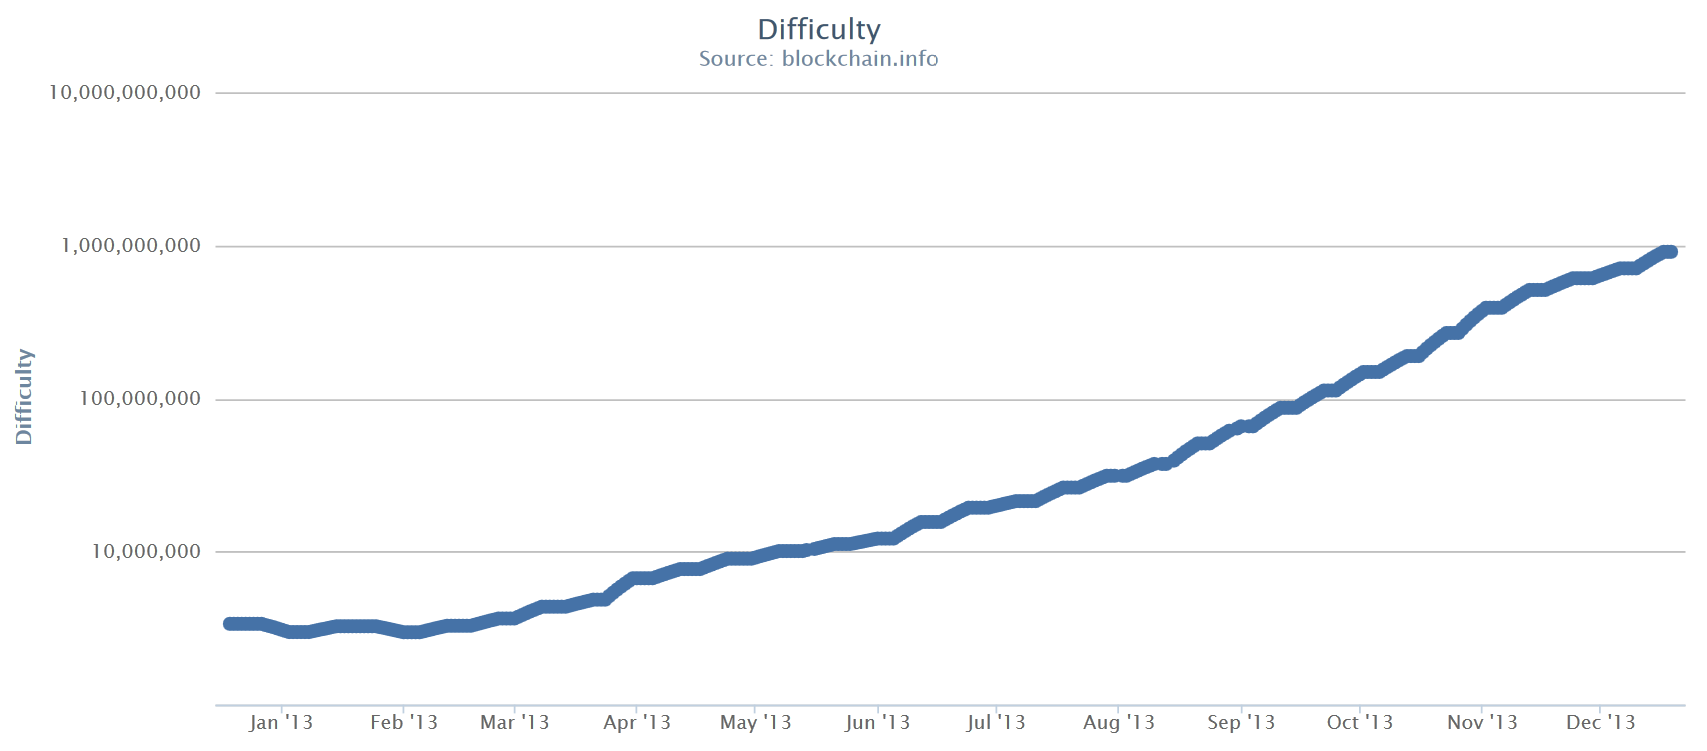 Bitcoin_difficulty_grow_ during_2013